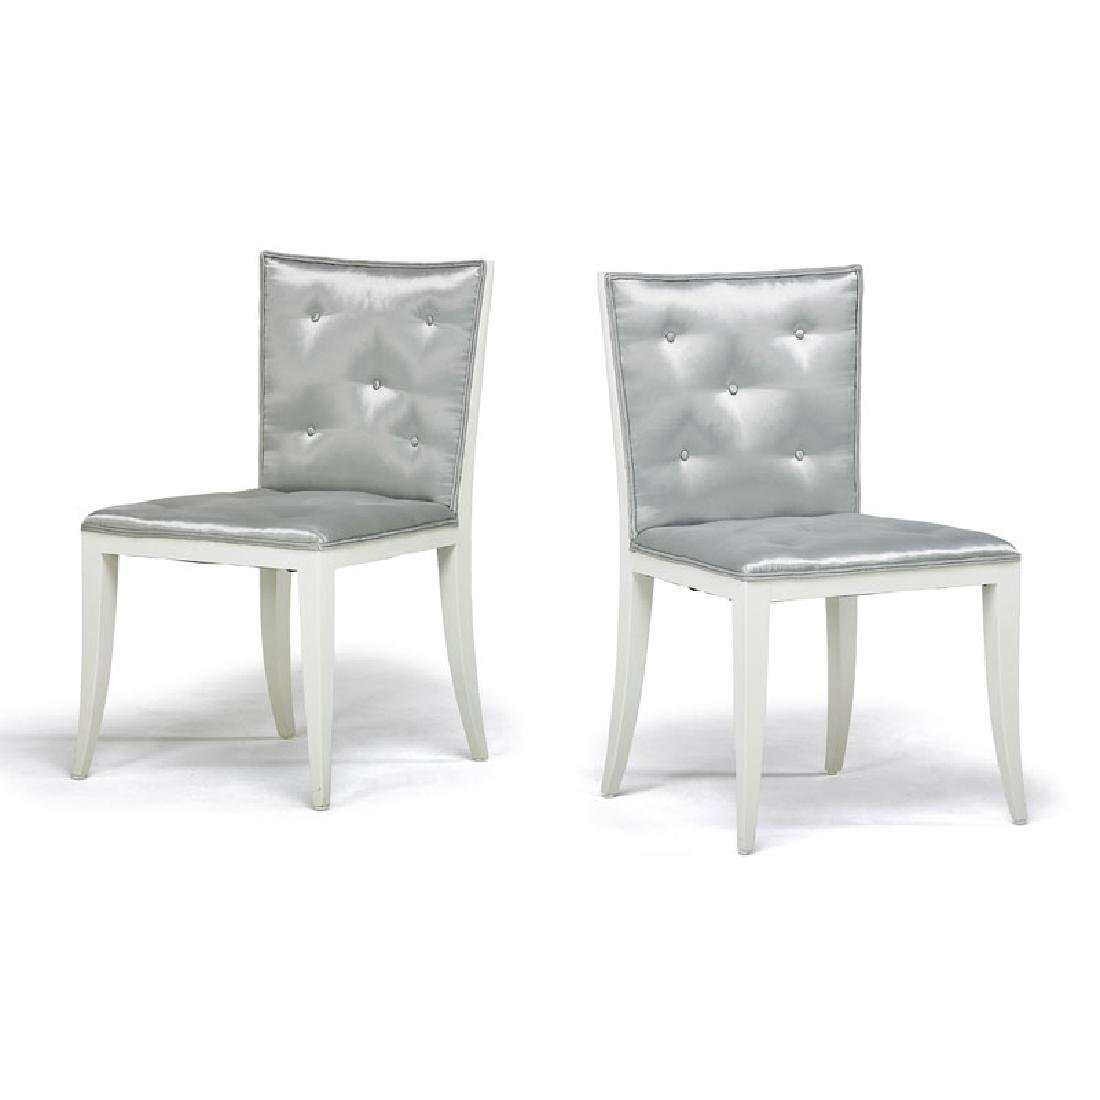 TOMMI PARZINGER Pair of sidechairs - 2